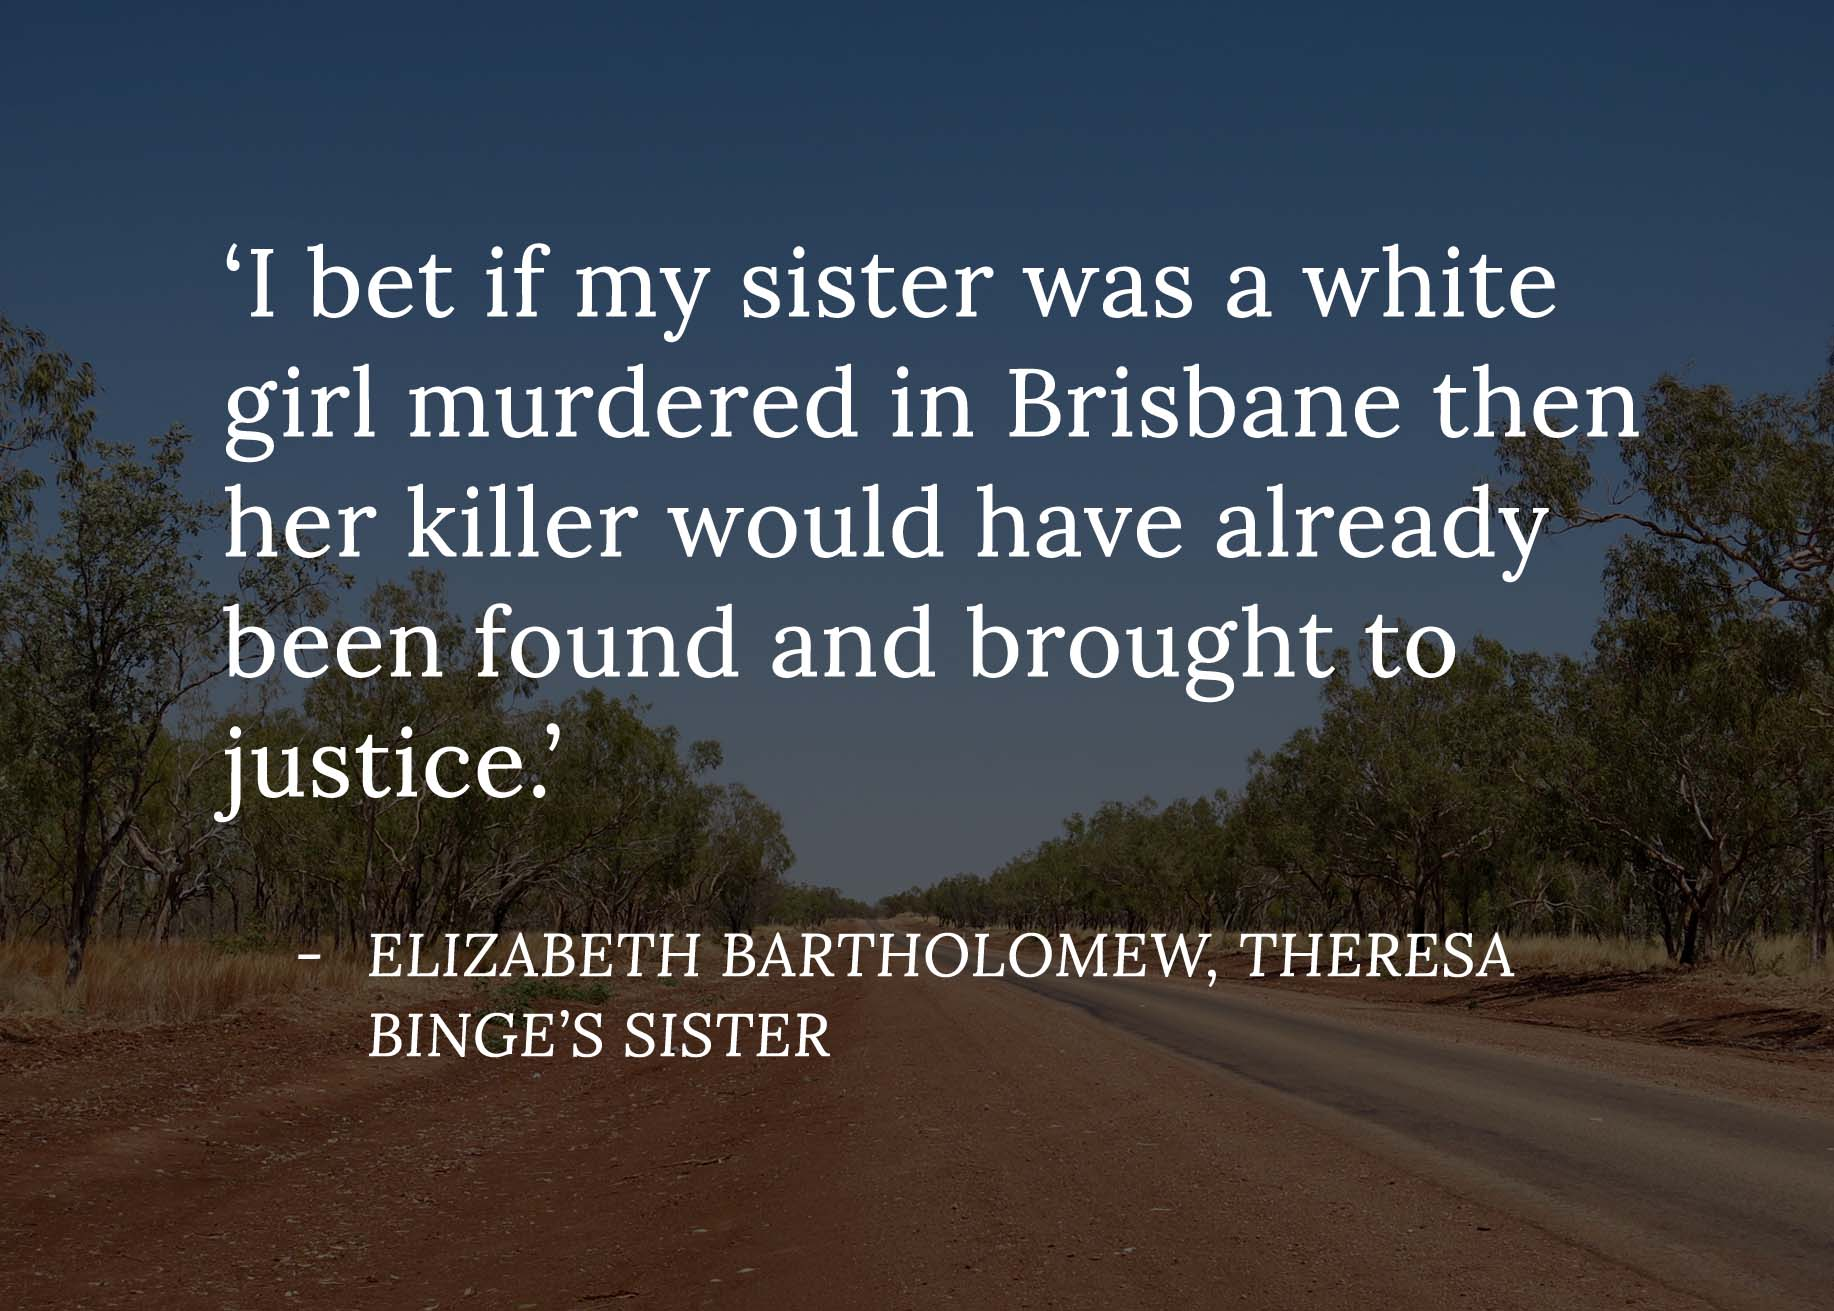 "Quote from Elizabeth Bartholomew (Theresa Binge's sister) which reads ""I bet if my sister was a white girl murdered in Brisbane then her killer would have already been found and brought to justice."""